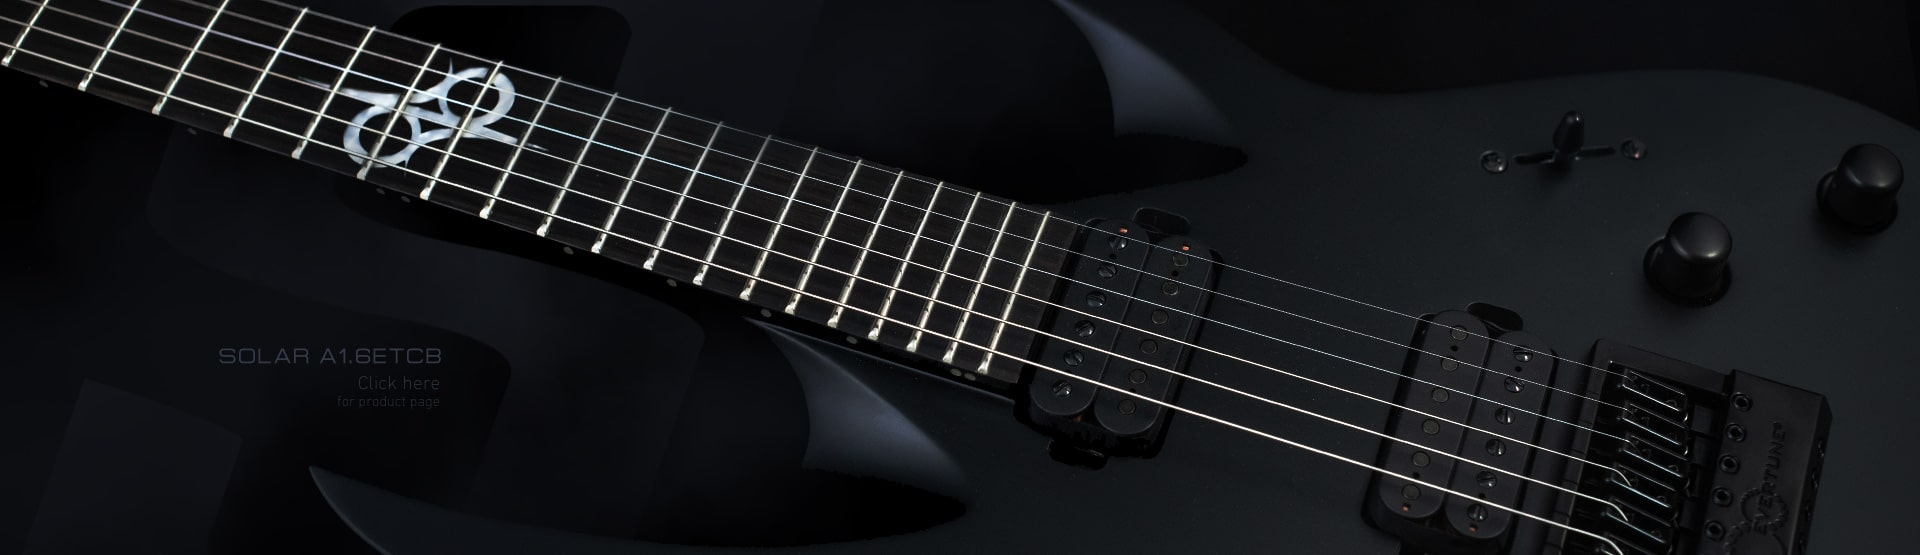 Welcome to the SOLAR GUITARS website ! on